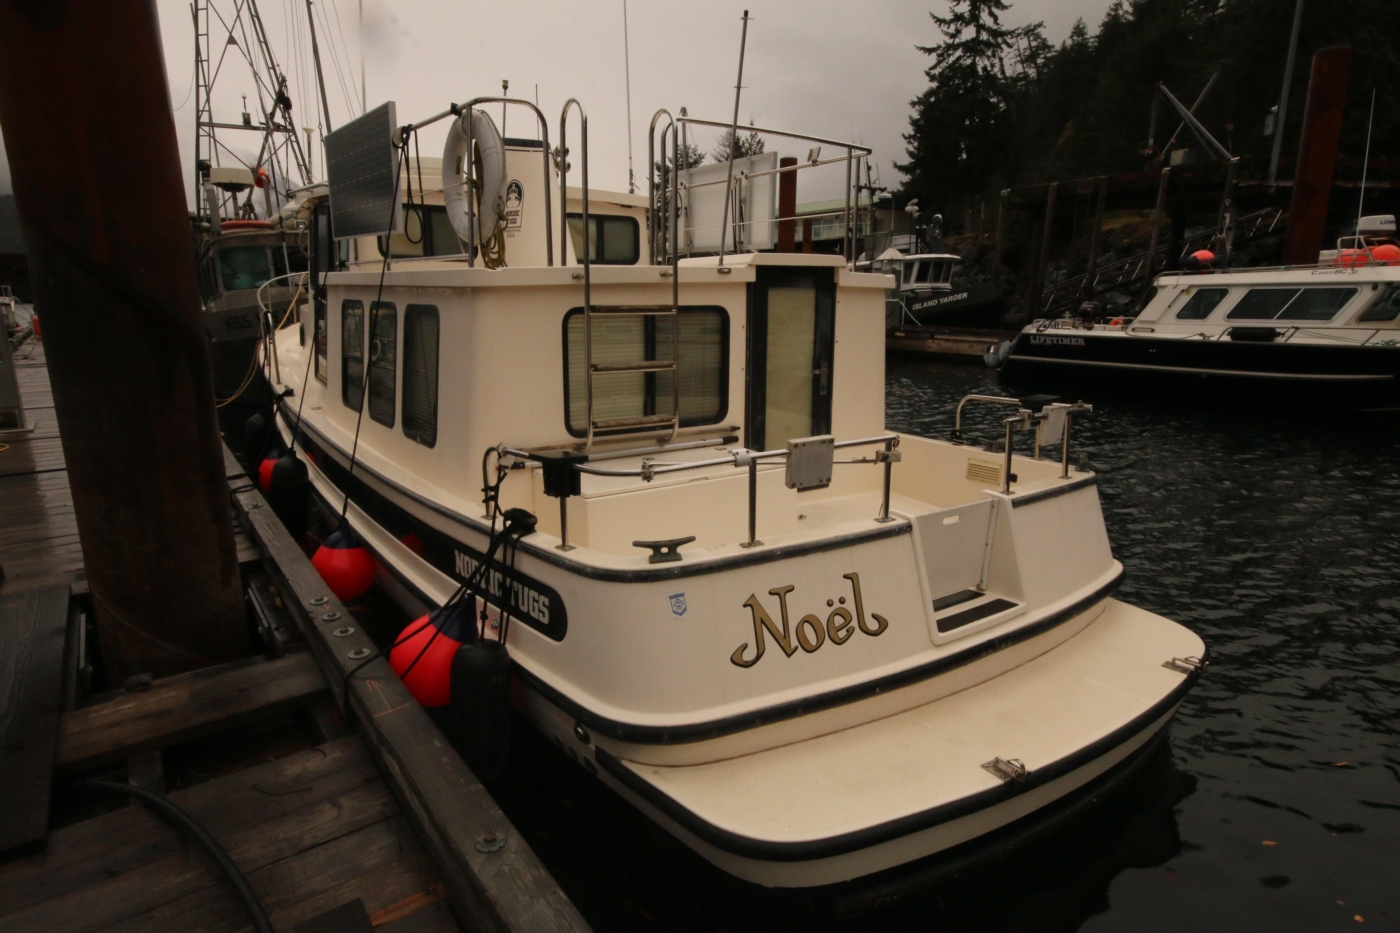 1999 Nordic Tugs 32, Access to Cockpit from Swim Grid